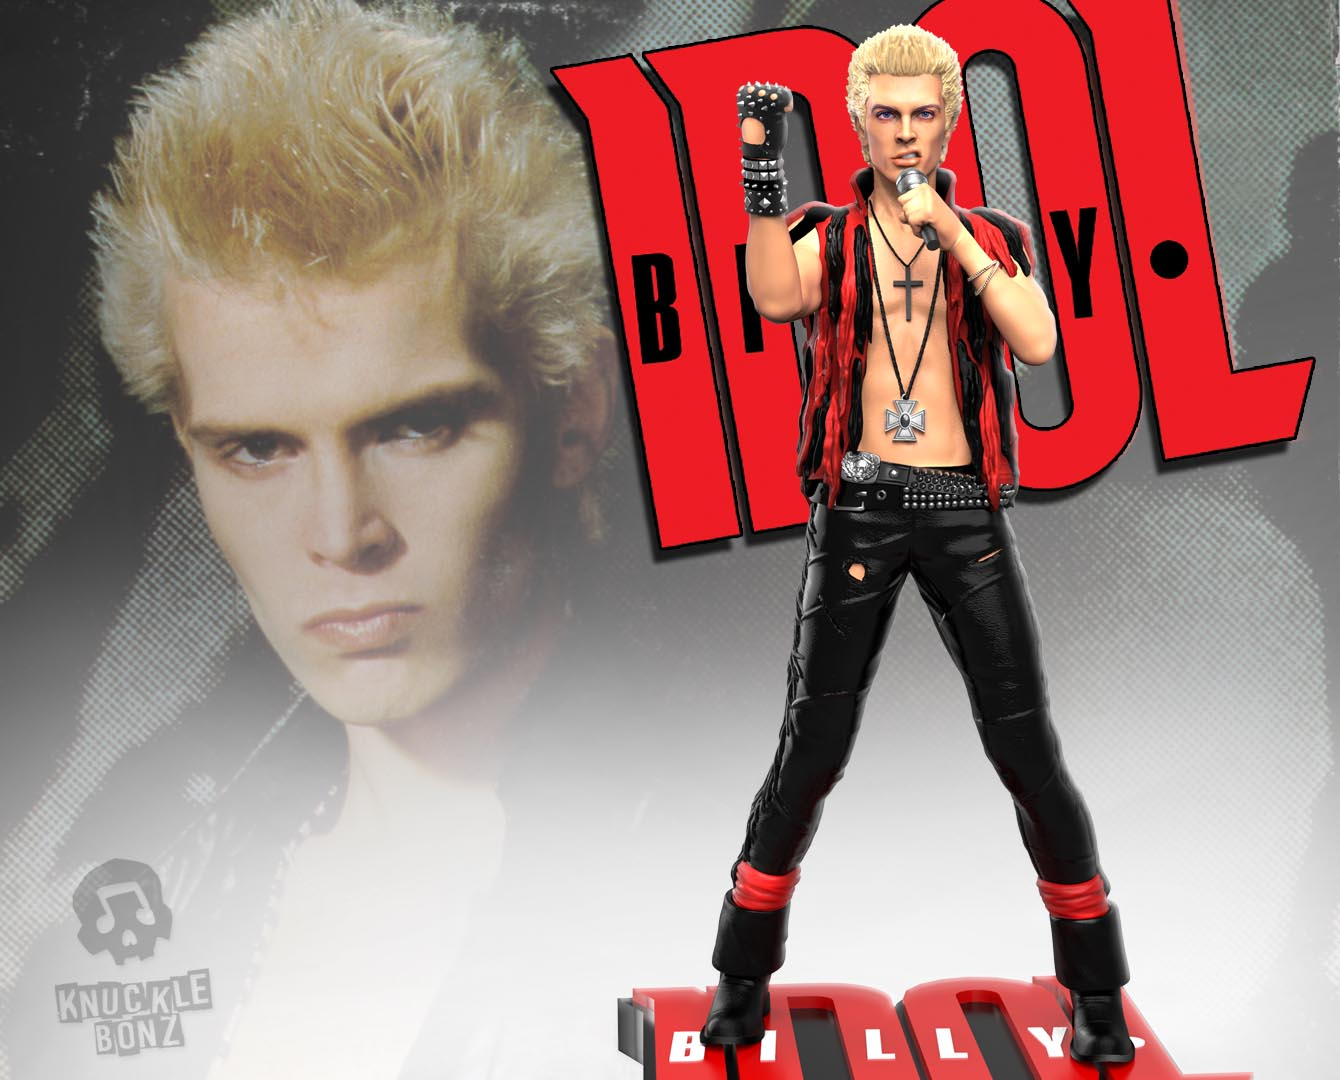 Billy Idol Rock Iconz Statue     Knucklebonz  Inc  Previous